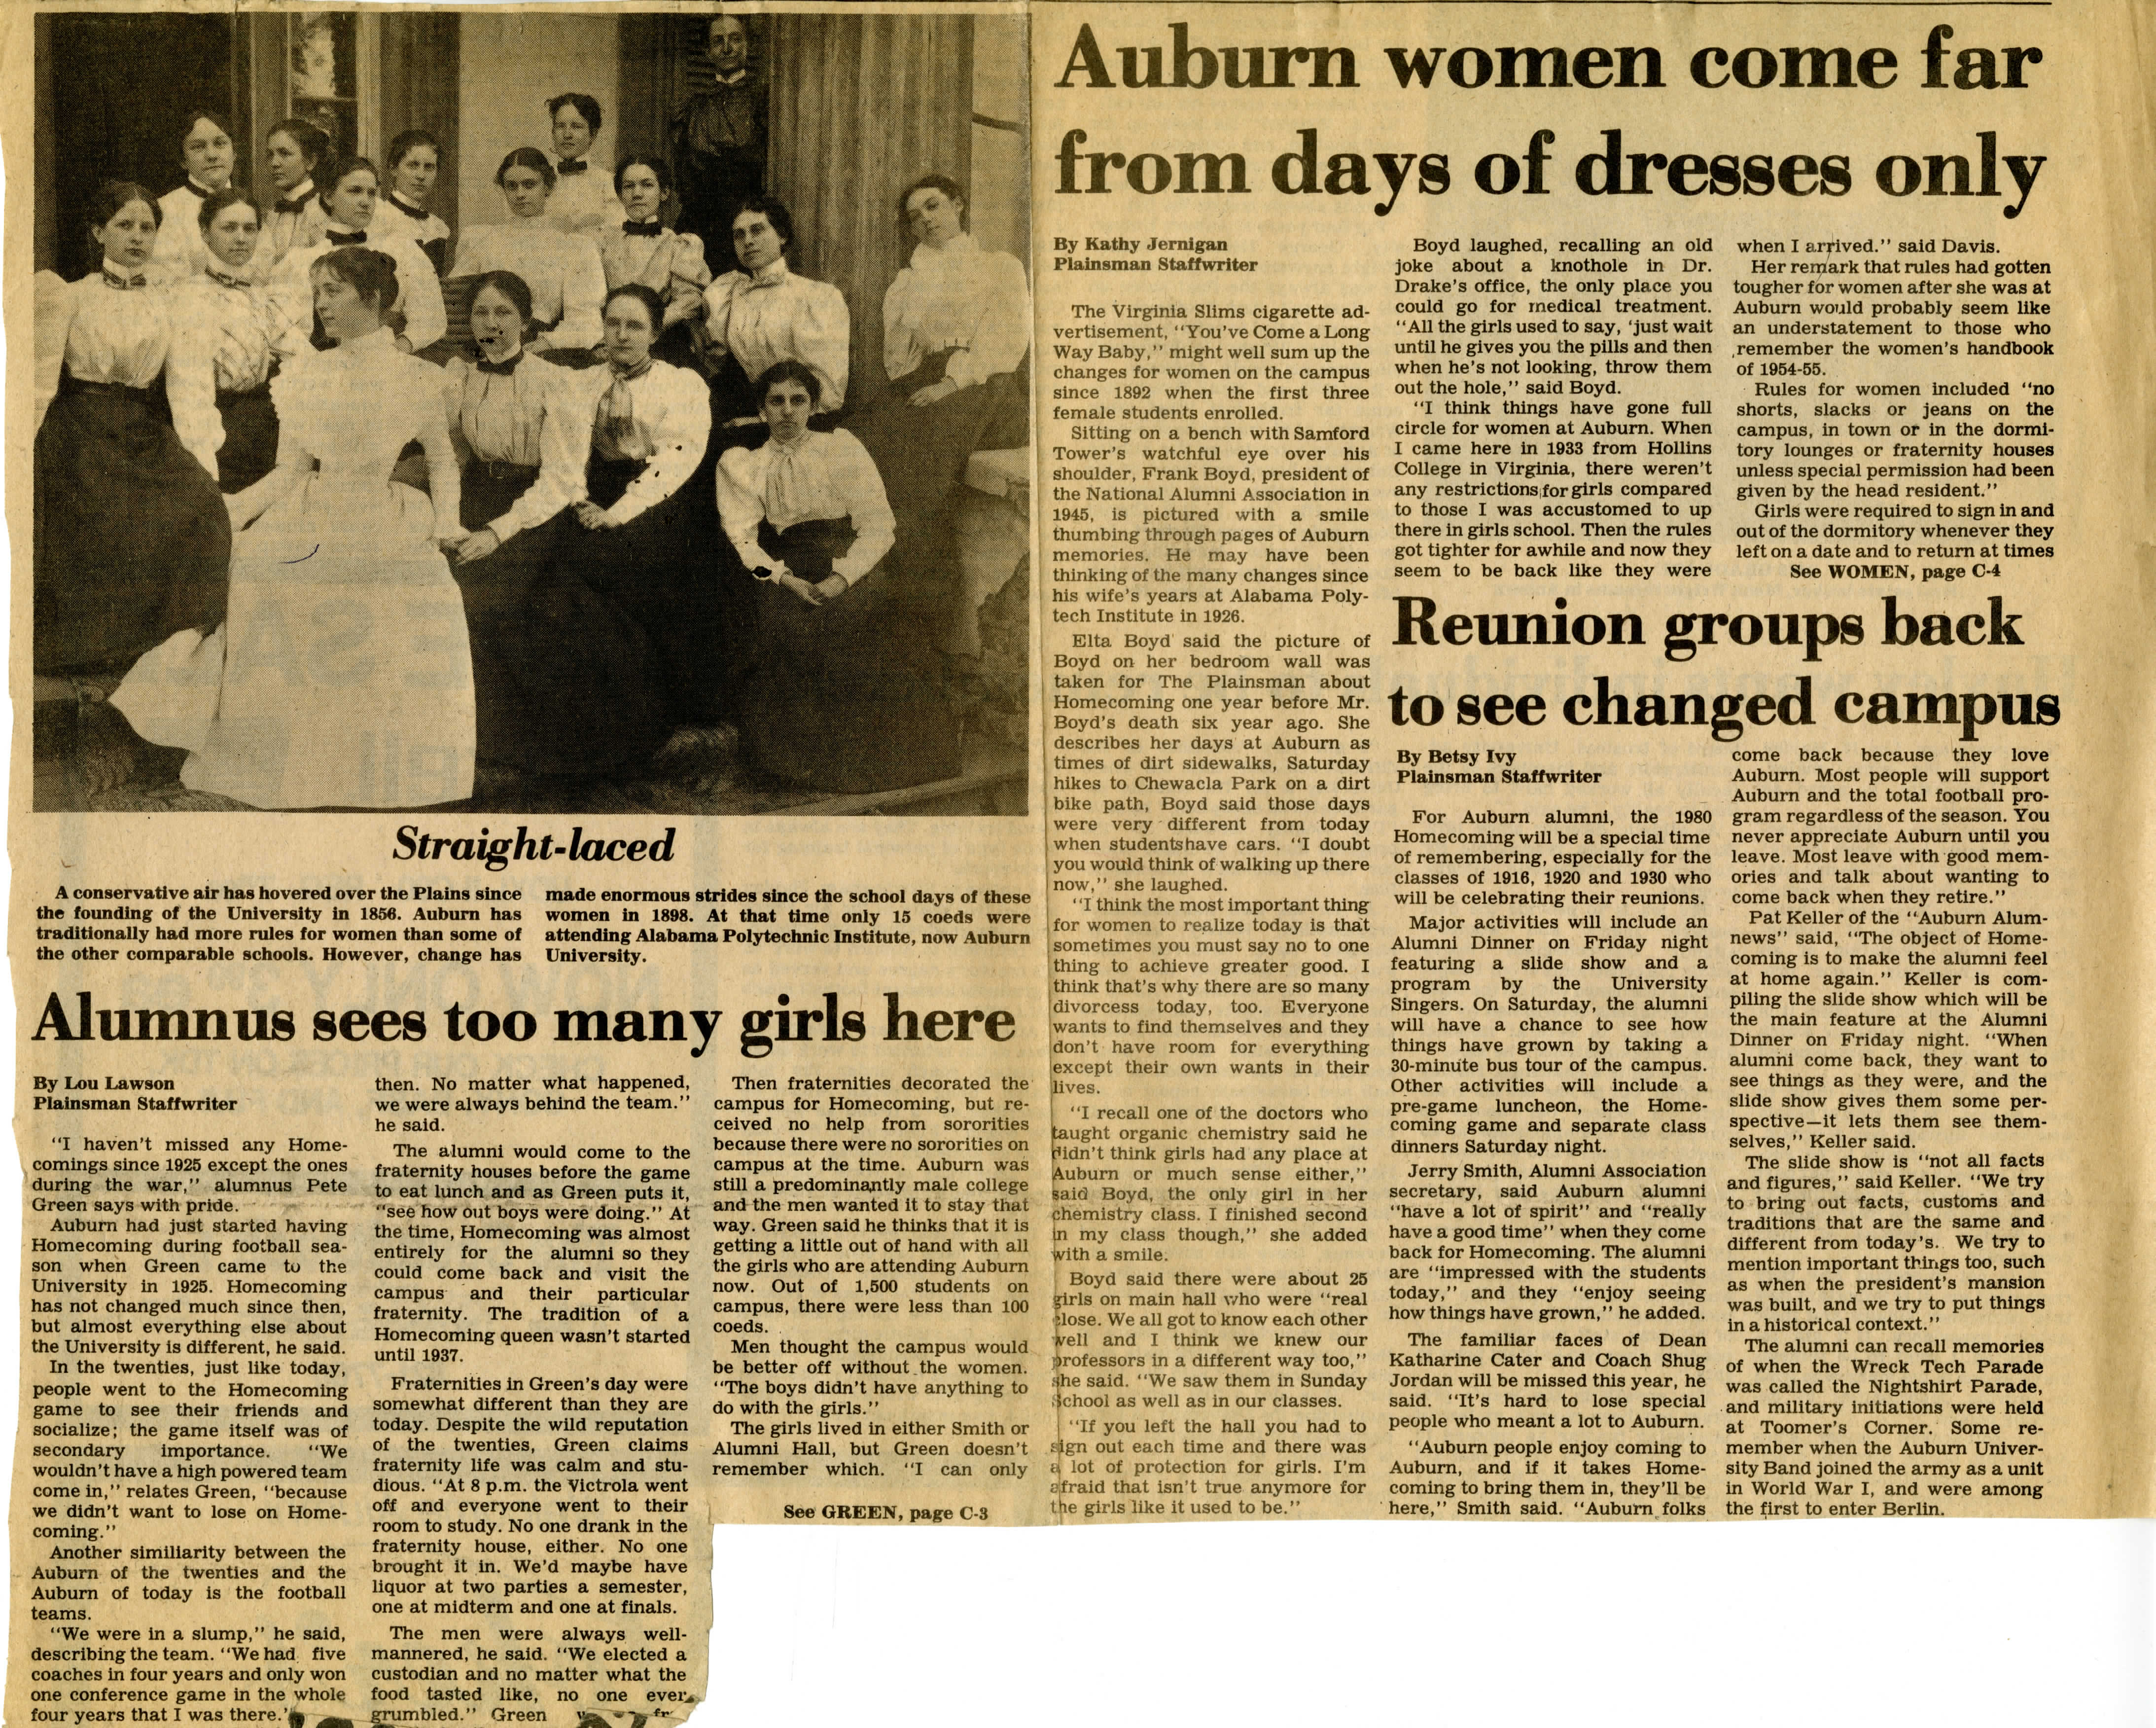 A newspaper clipping that reflects on women's advancements at Auburn University.